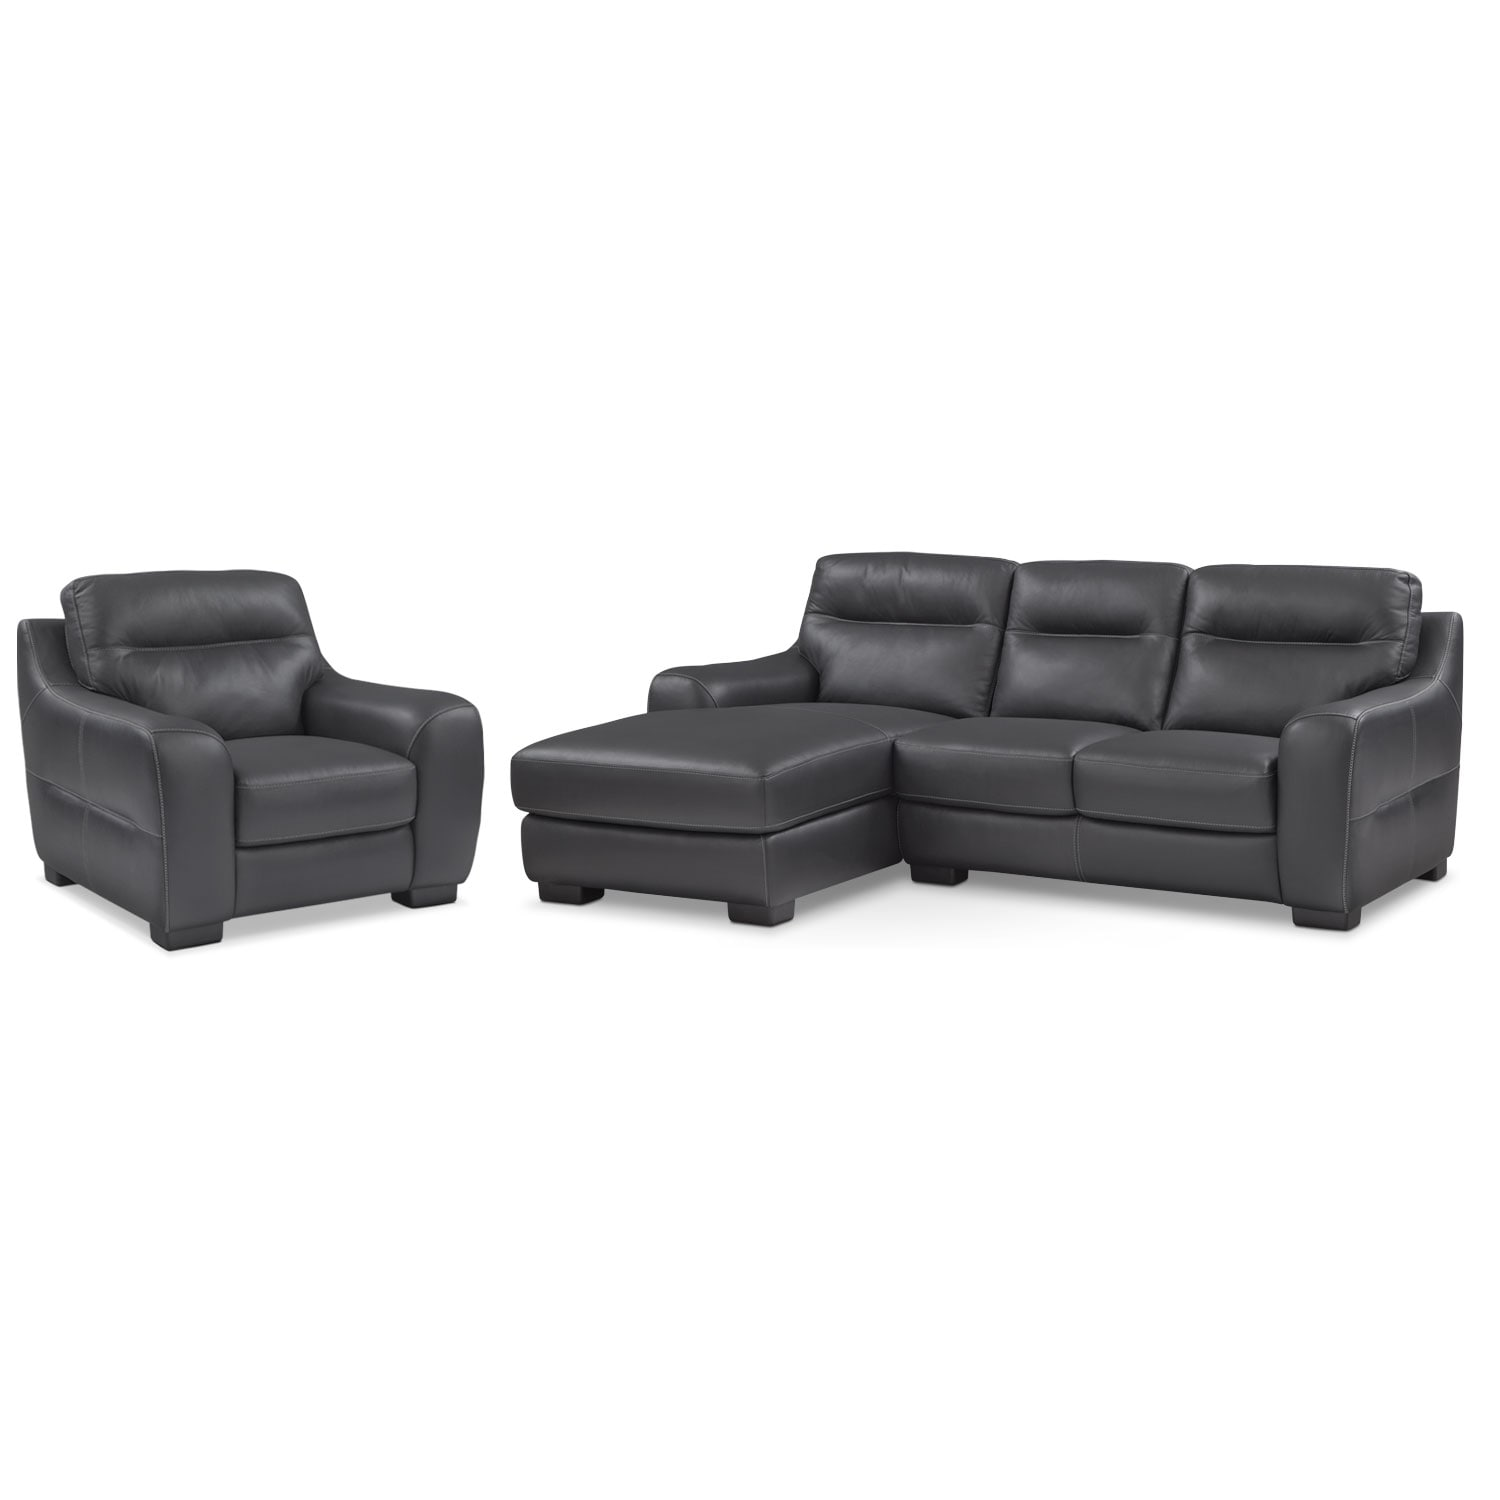 Living Room Furniture - Rocco Black 2 Pc. Left-Facing Chaise Sectional and Chair